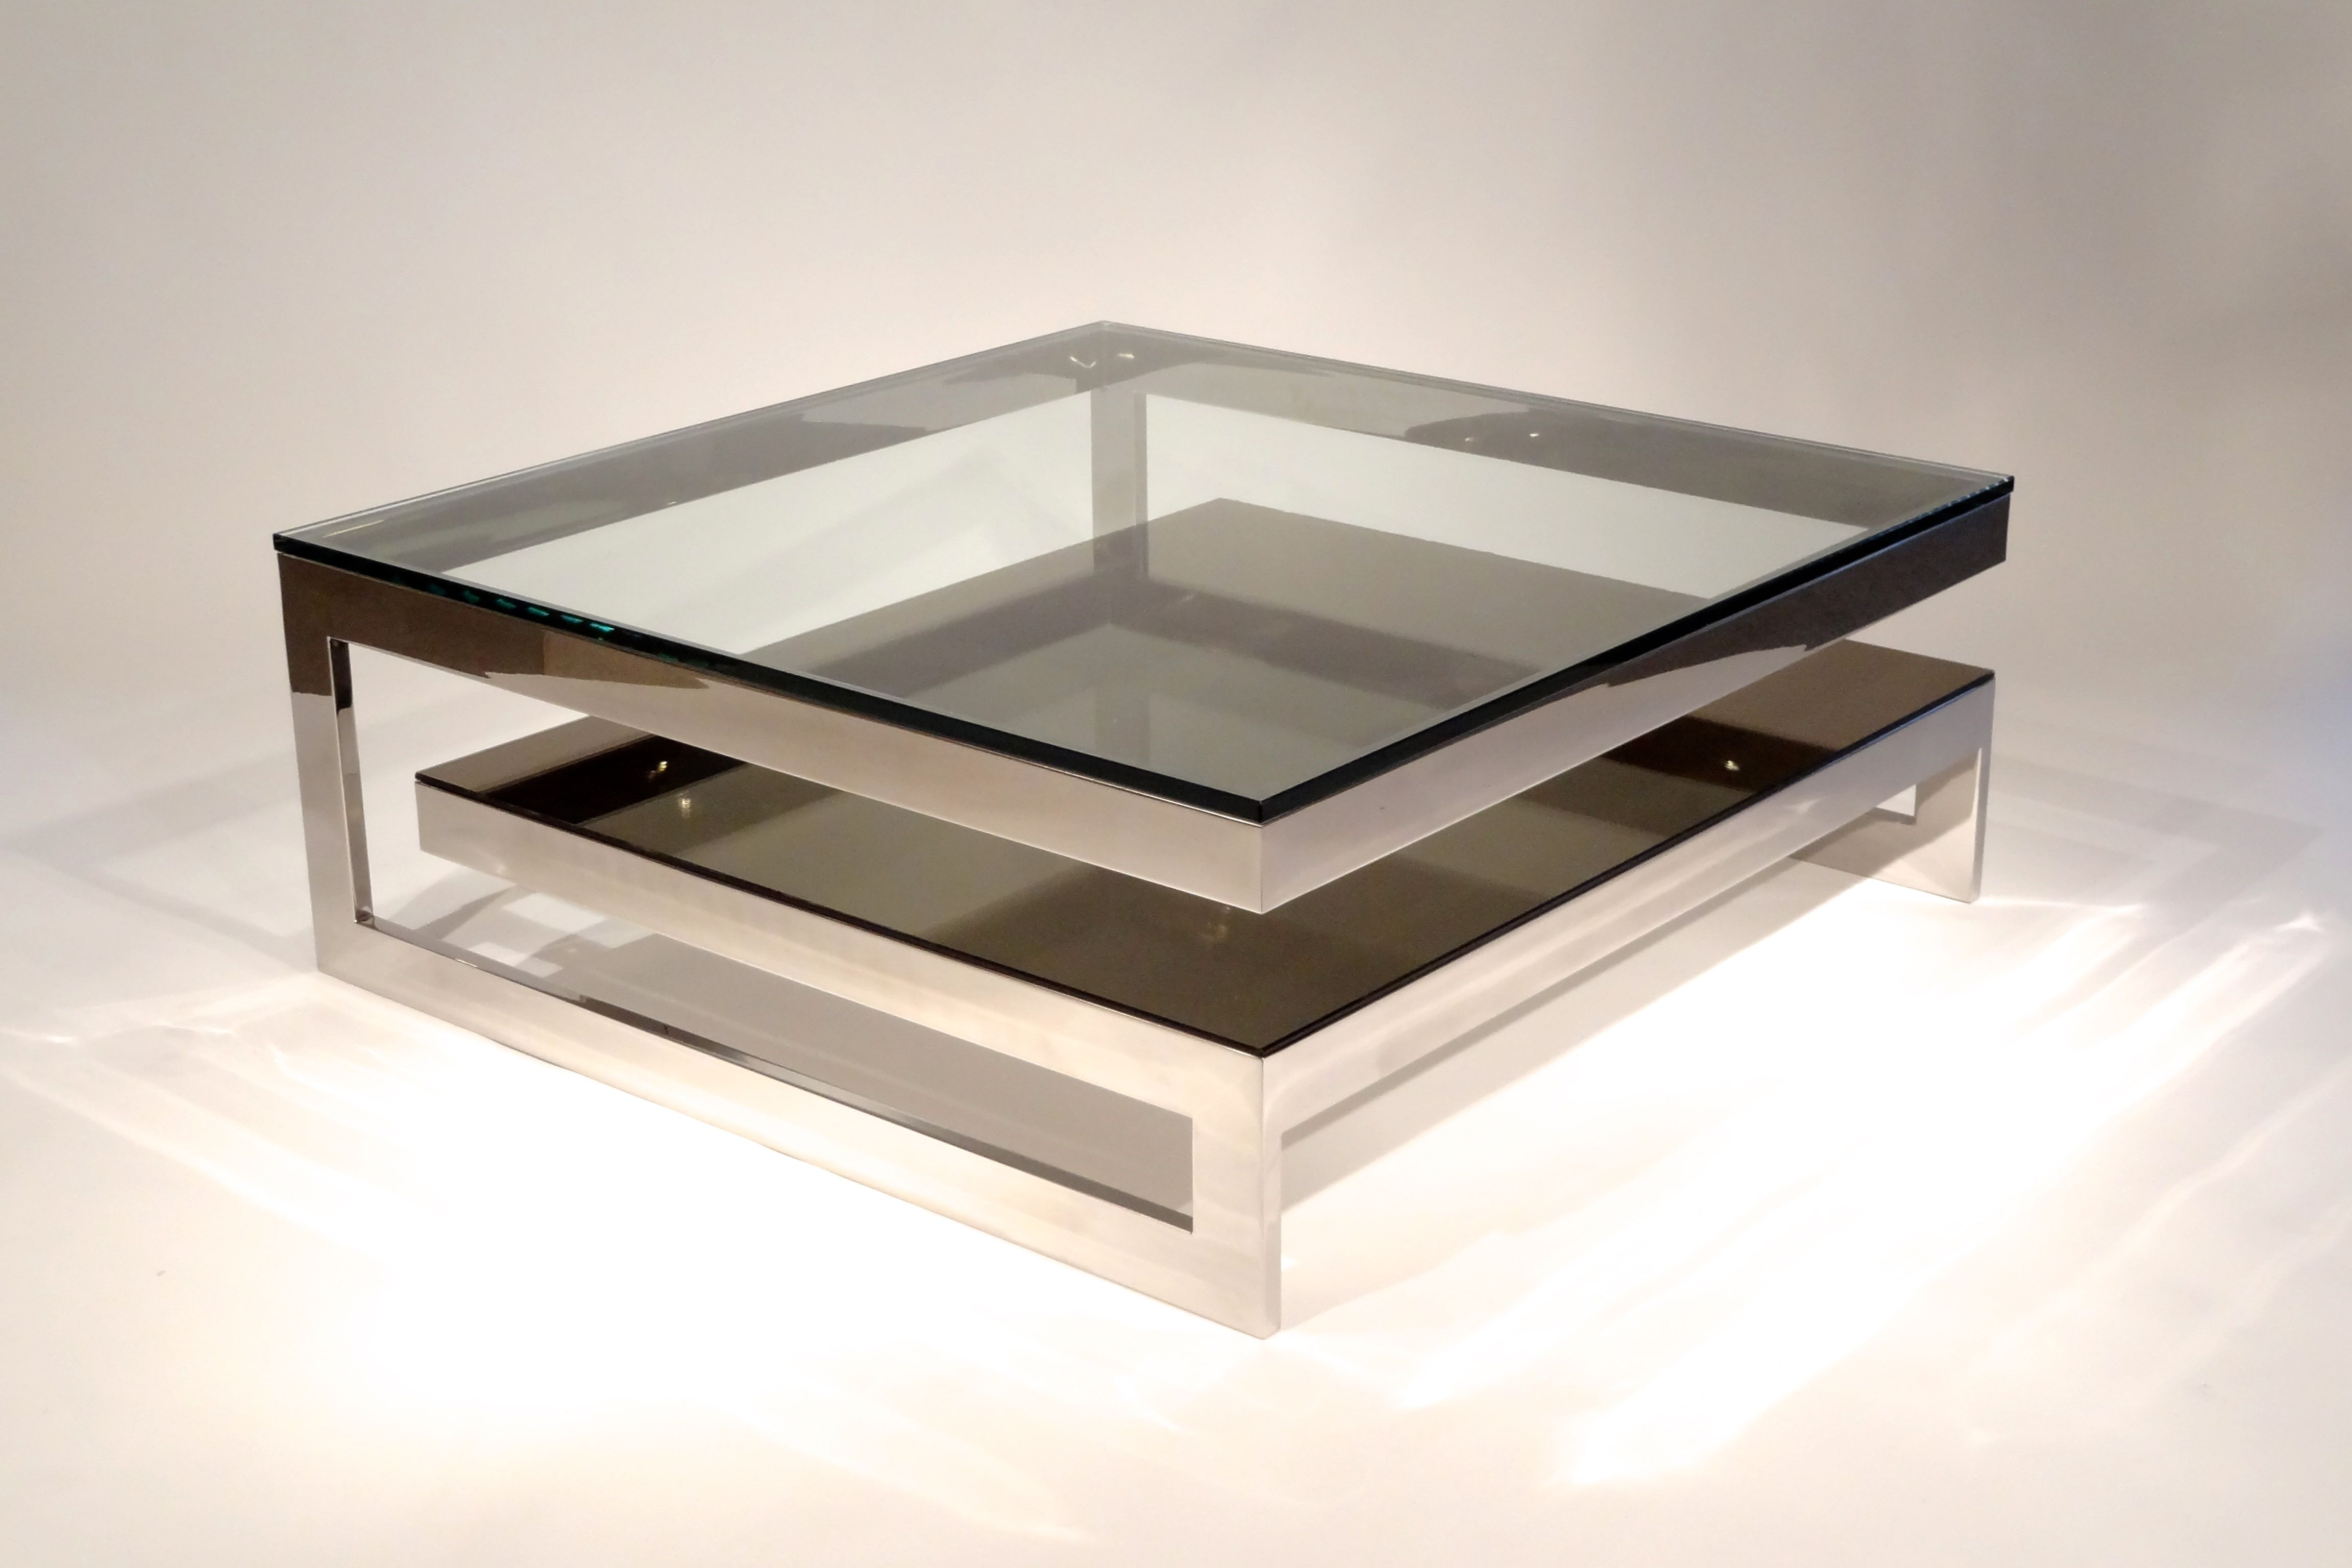 Mesmerizing Mirrored Coffee Table For Your Living Room